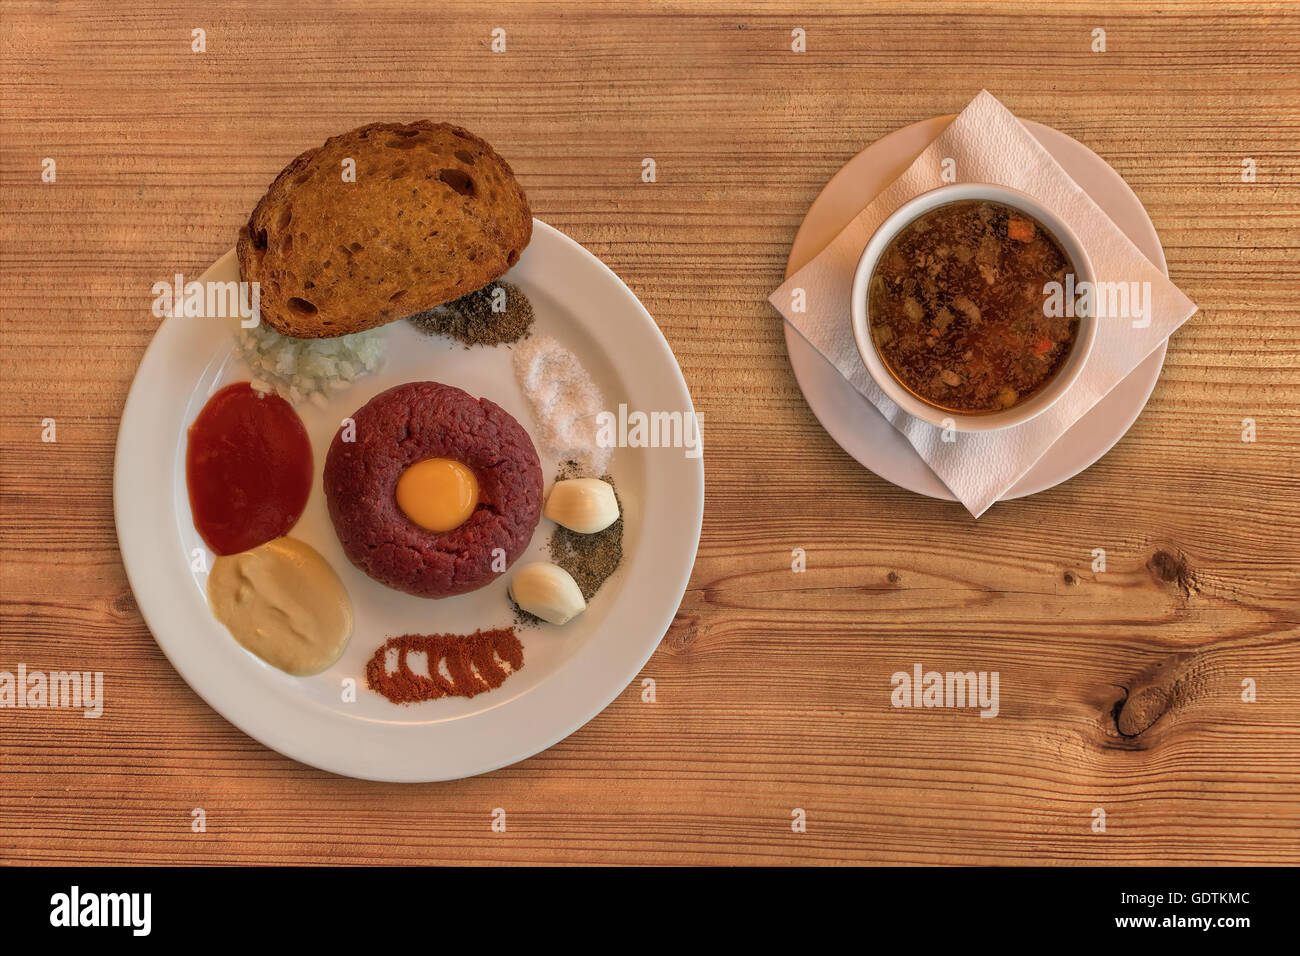 Flat lay of raw beef . Tasty Steak tartare. Classic steak tartare on rustic wooden table with a beef broth. Ingredients: Stock Photo